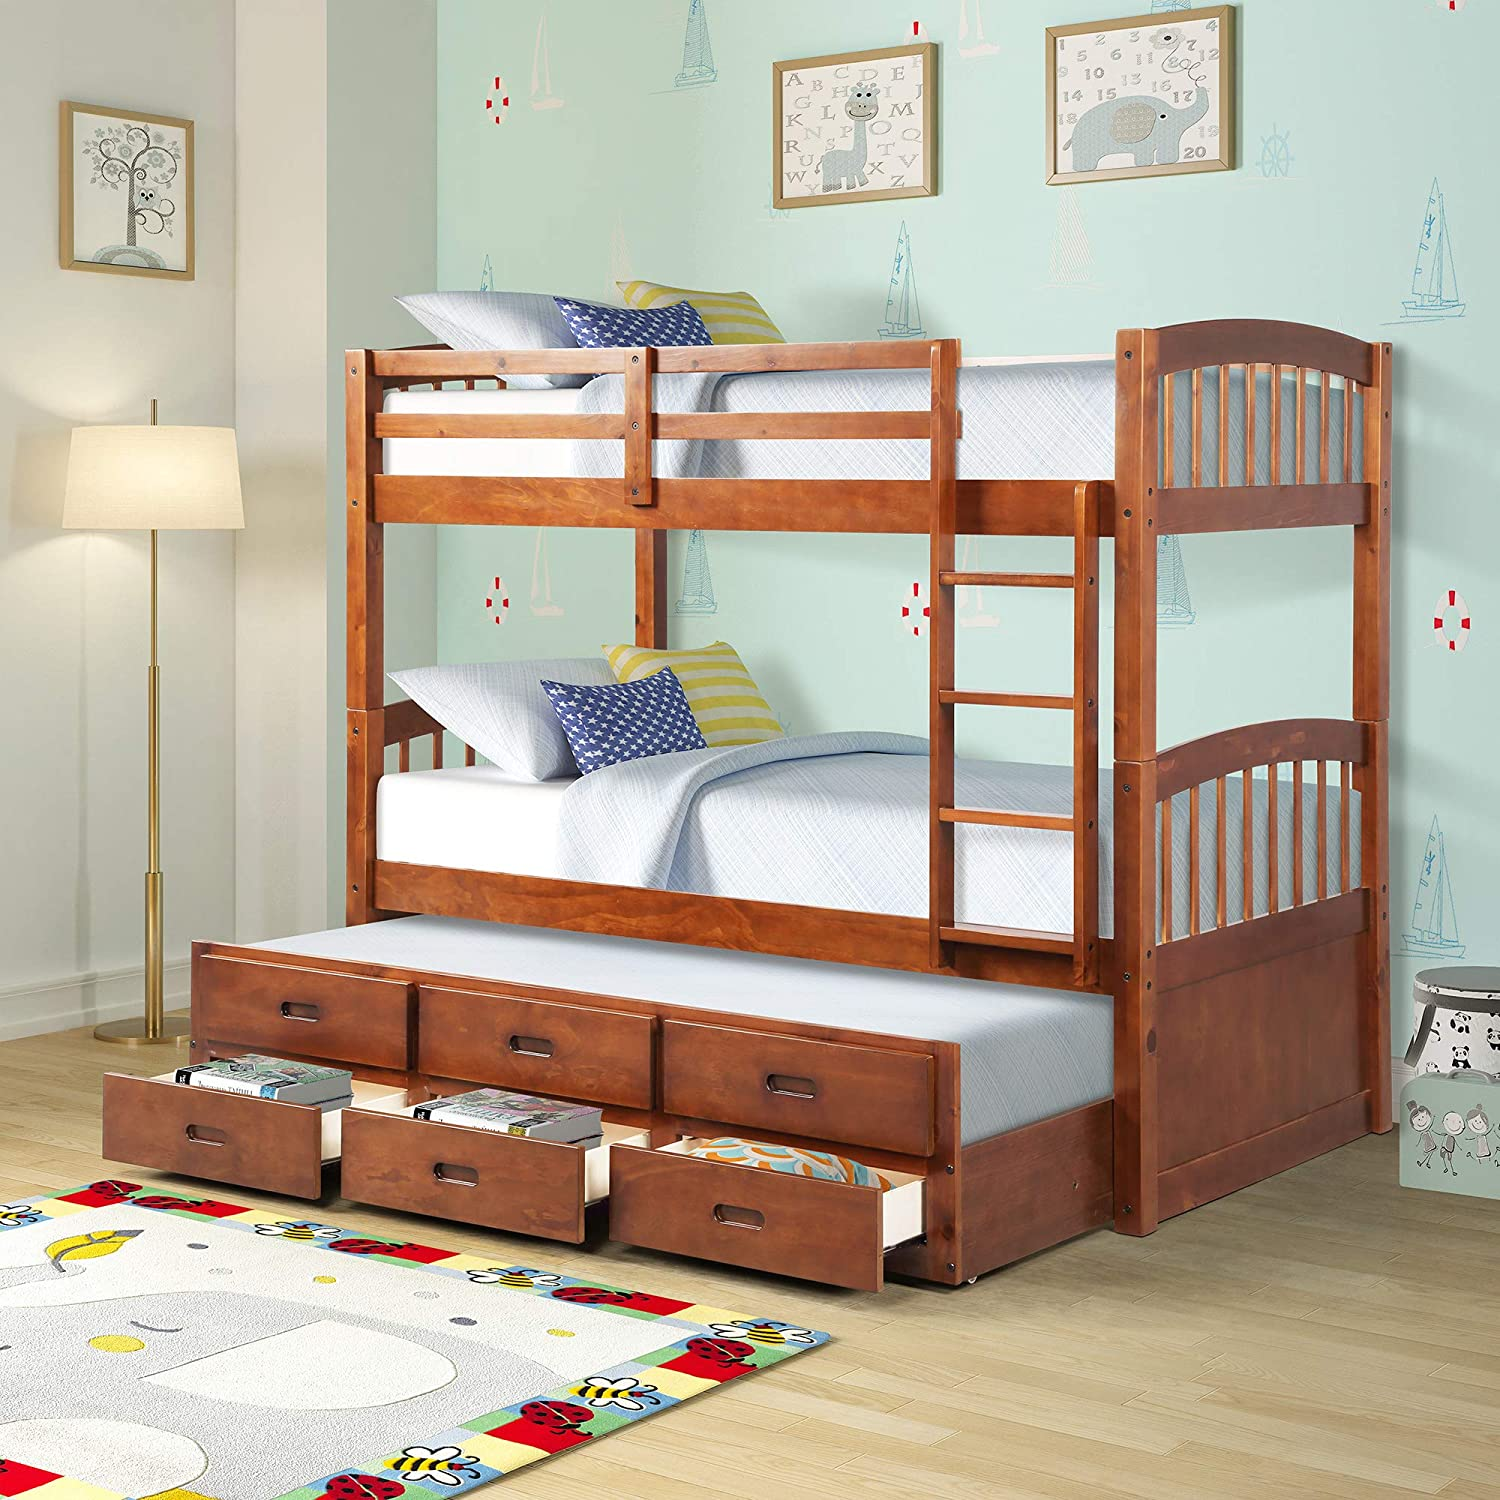 G-house Twin Over Twin Wood Bunk Bed with Safety Rail, Ladder, Trundle and Storage Drawers, Walnut Brown